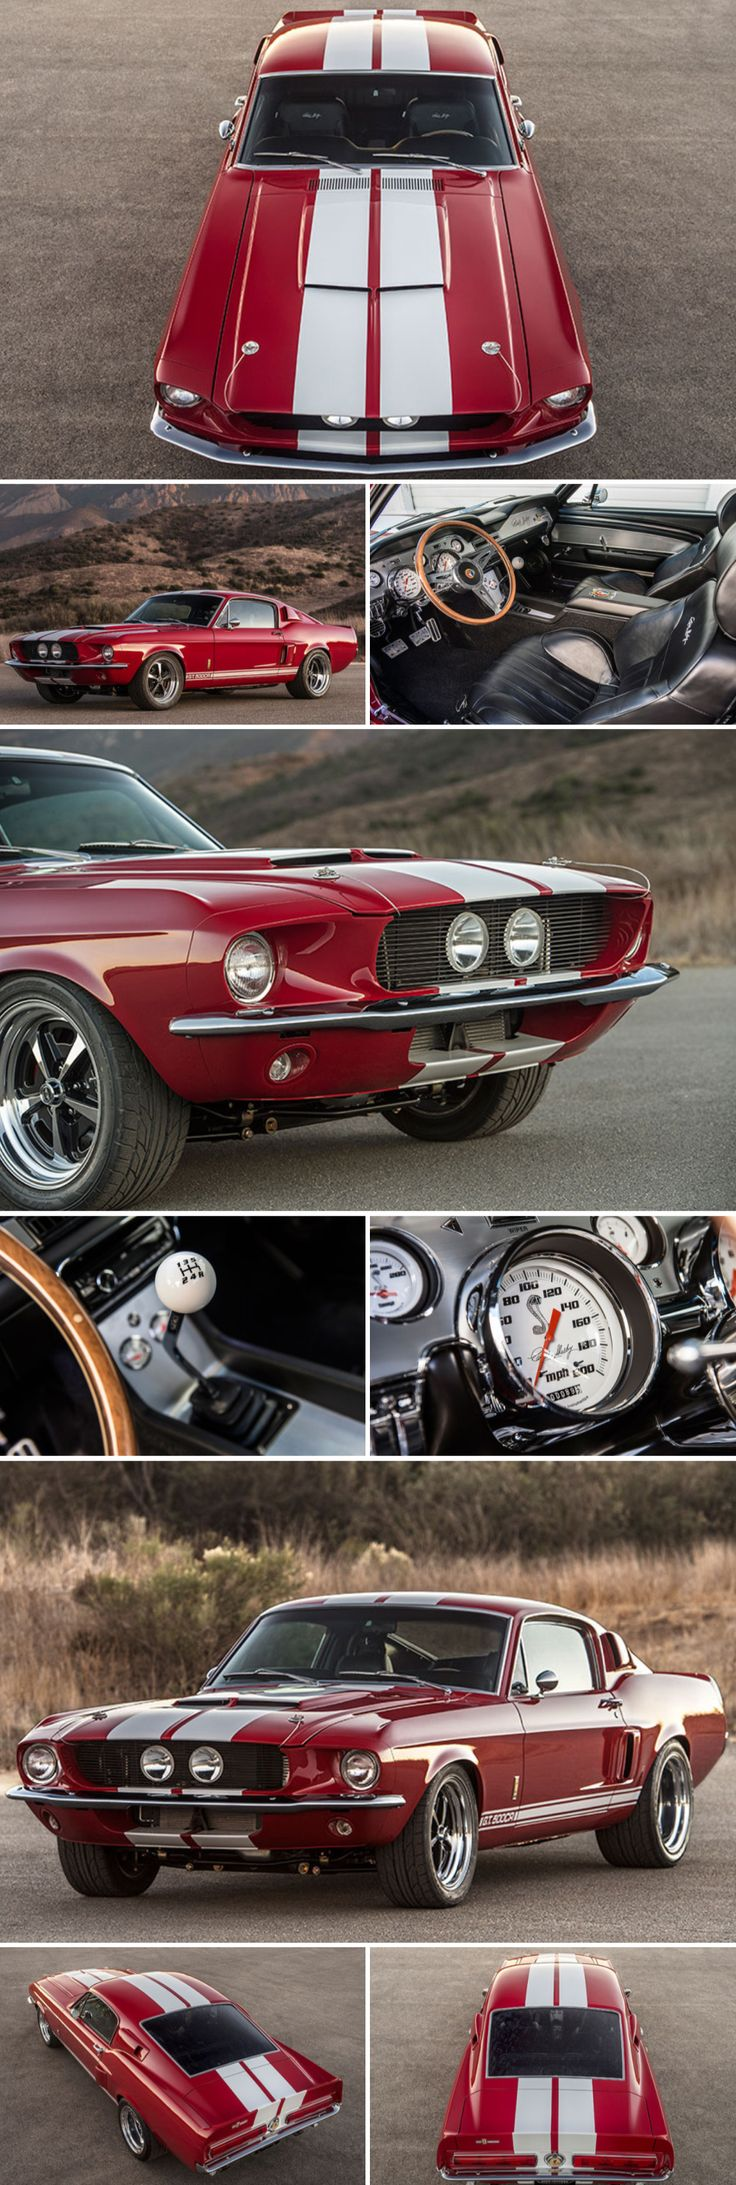 1967 Mustang Gt500, 1967 Shelby Gt500, Ford Mustang Shelby Gt500, Car Volkswagen, American Classic Cars, Mustangs, Muscle Cars, Motors, Dream Cars